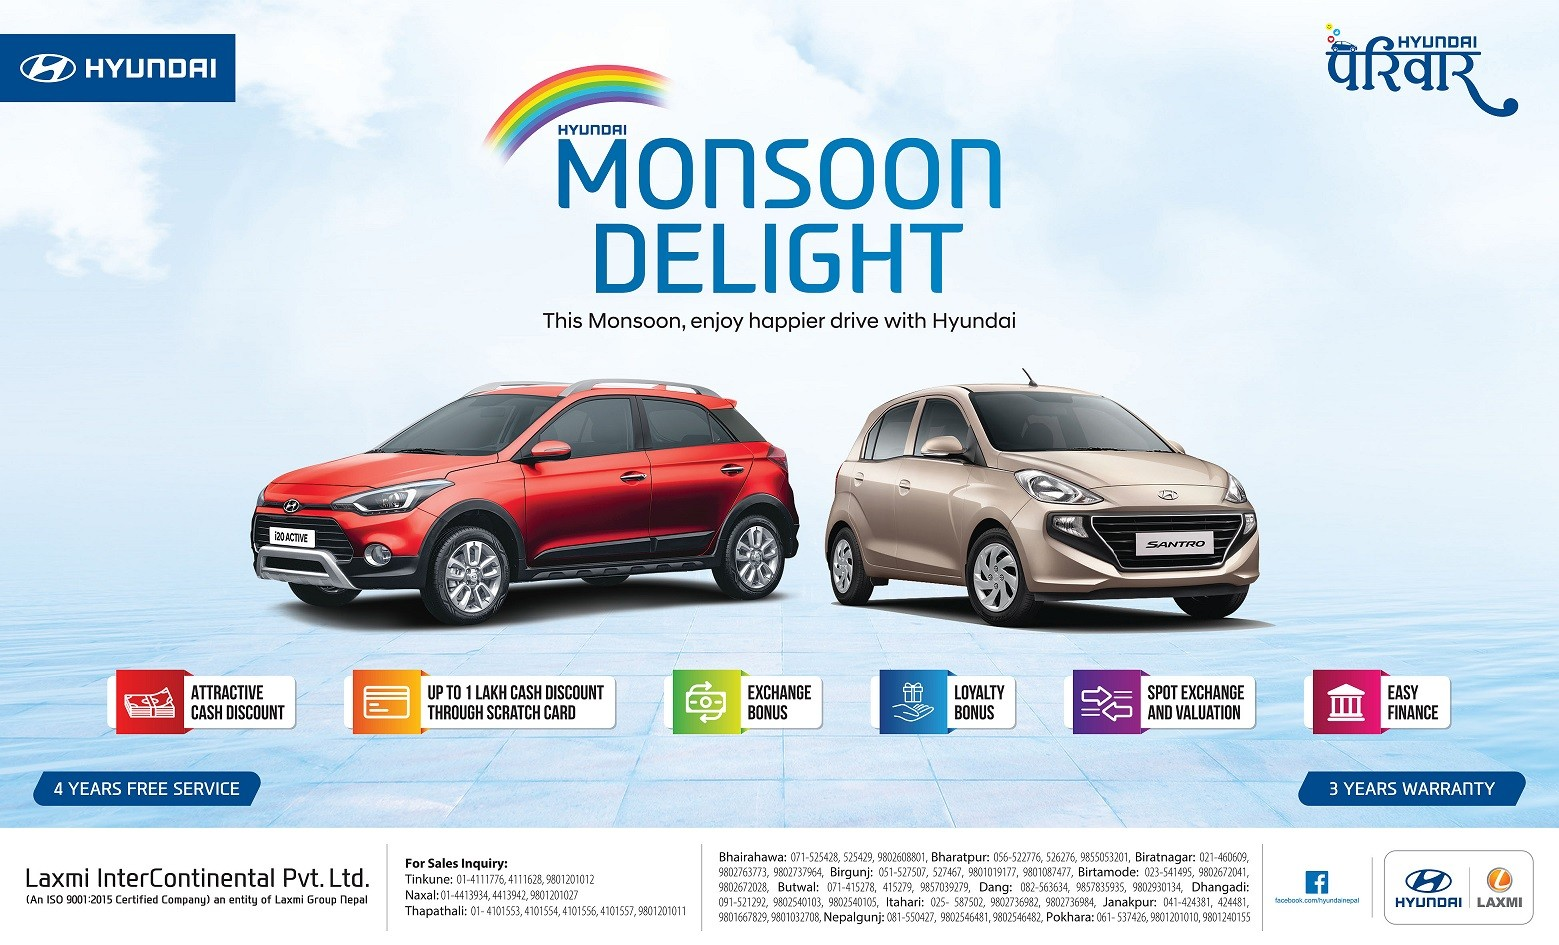 Hyundai Monsoon Delight